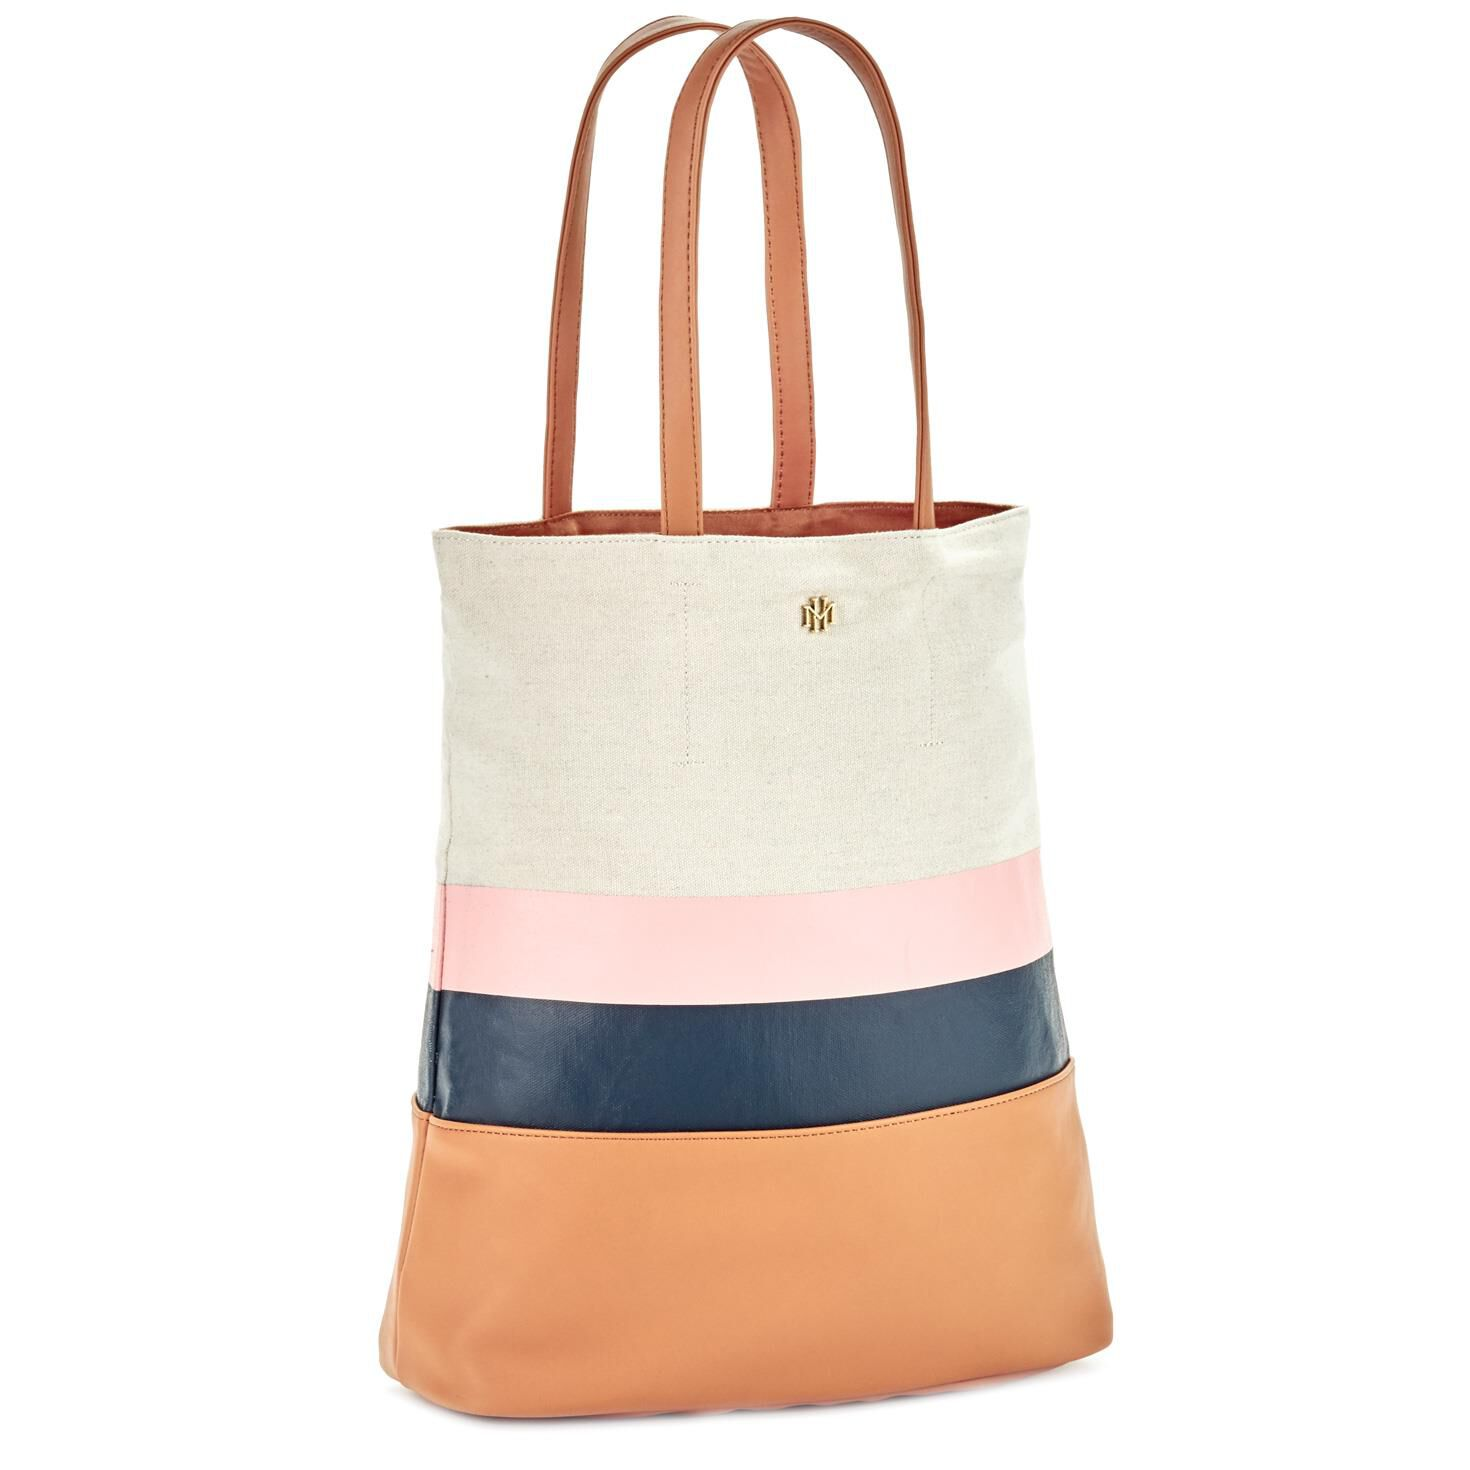 VIDA Tote Bag - Inner. by VIDA UhzZW